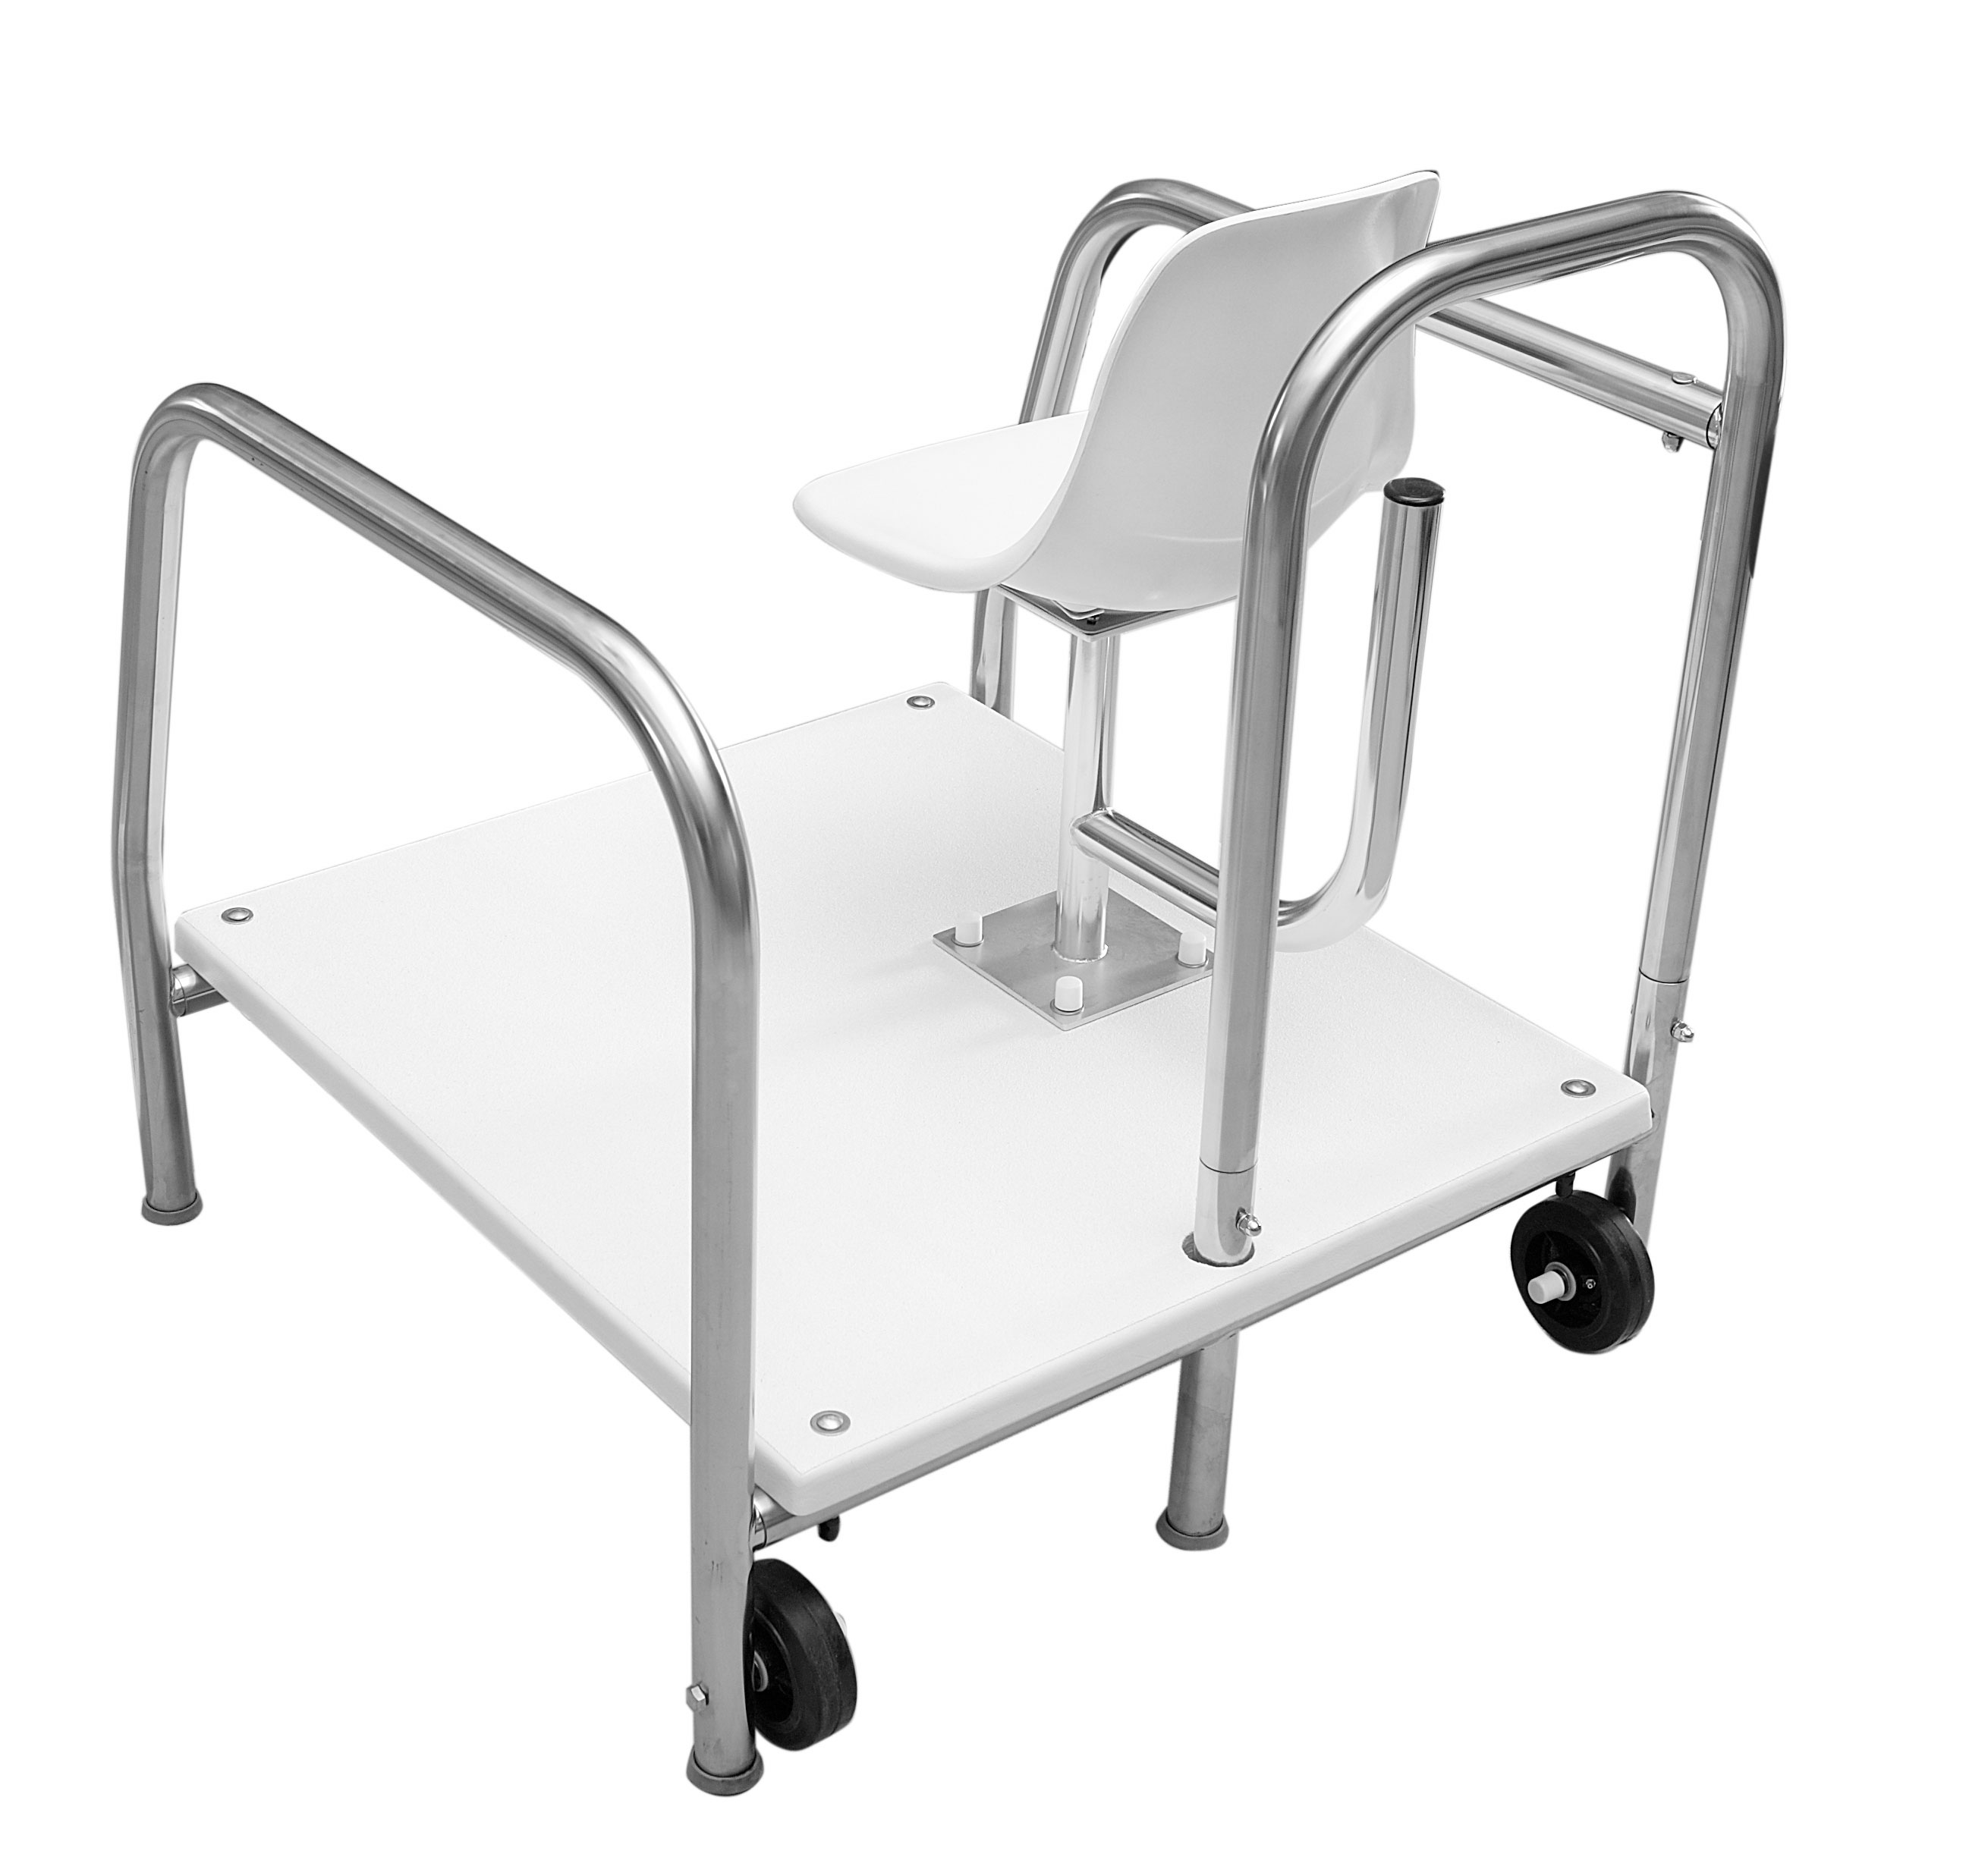 Low Profile Lifeguard Chair ficial S R Smith Products